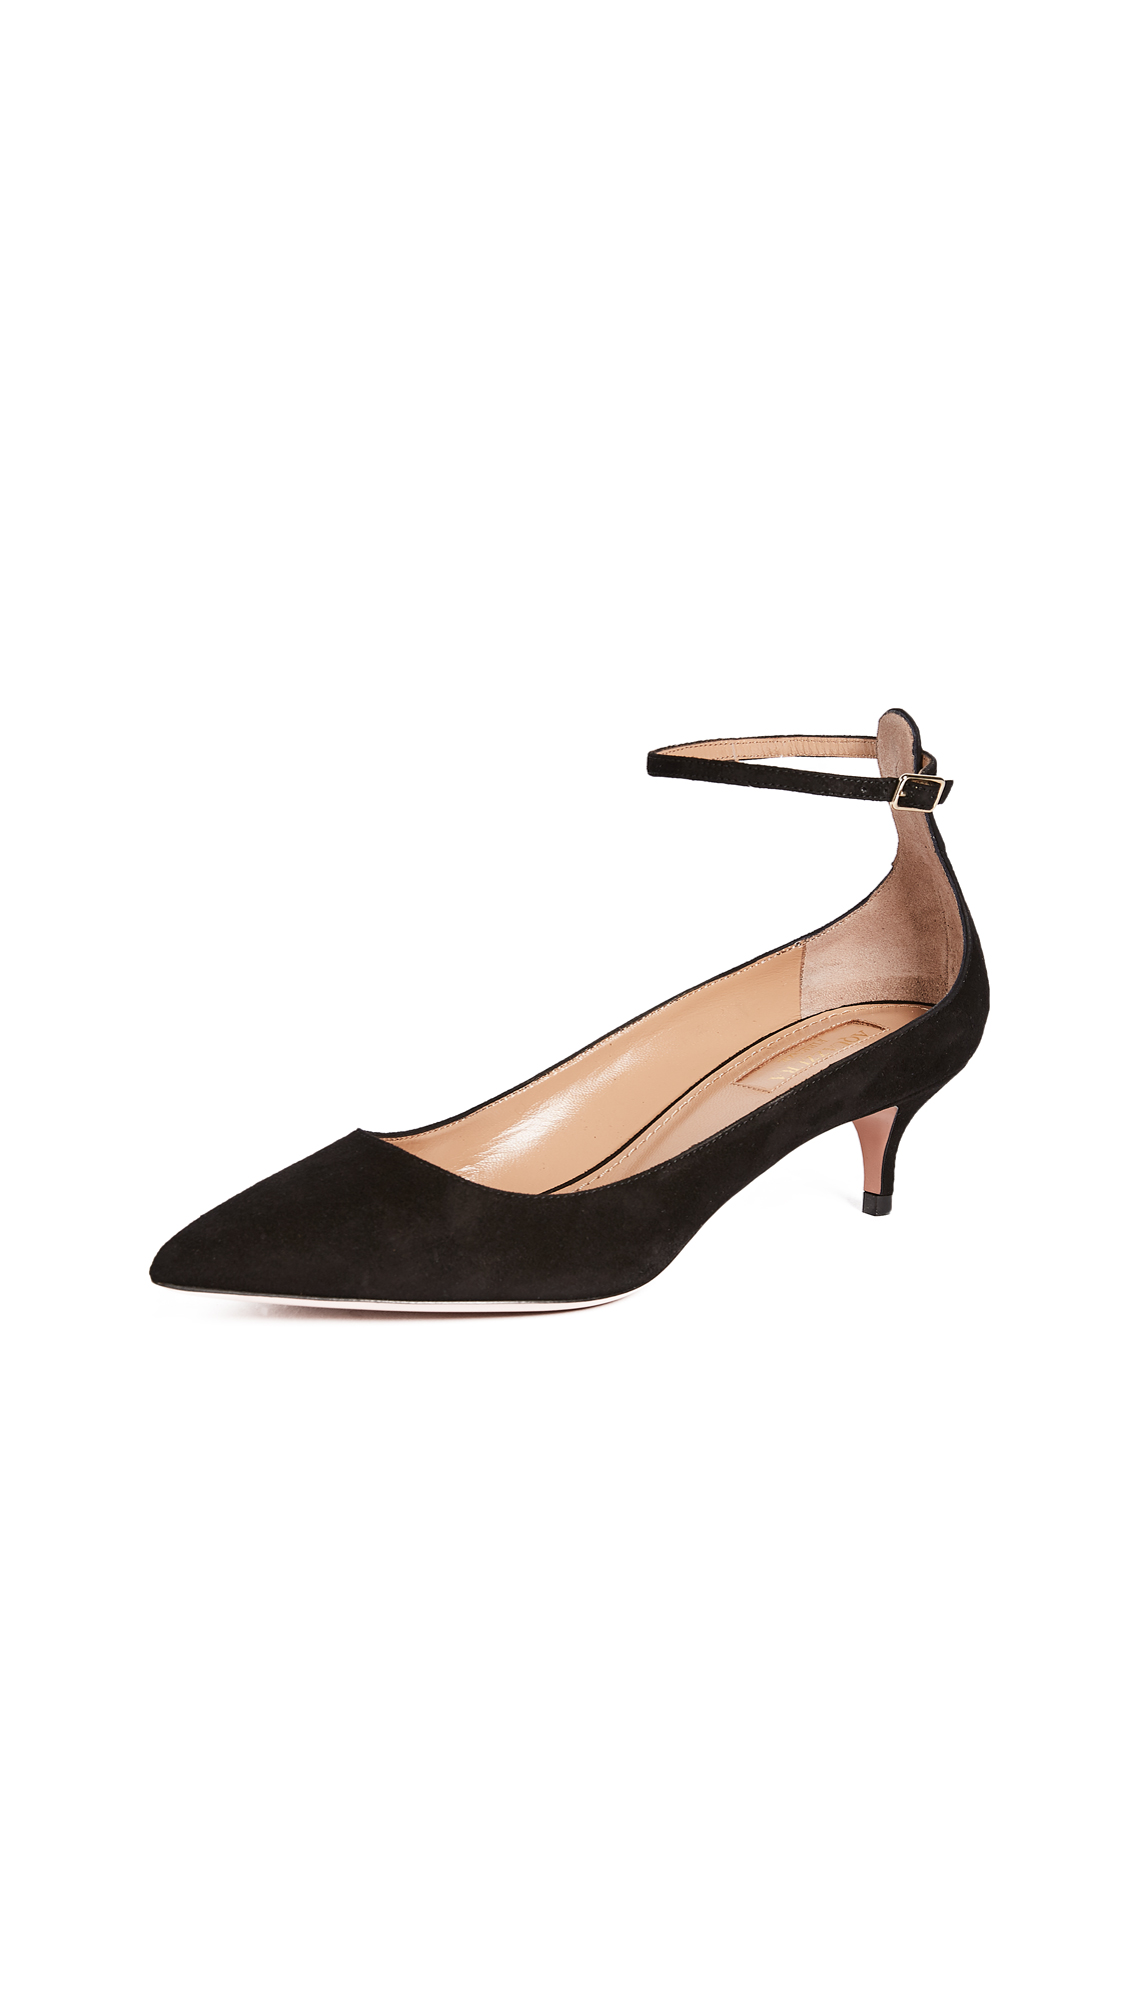 Aquazzura Kisha 45 Pumps - Black